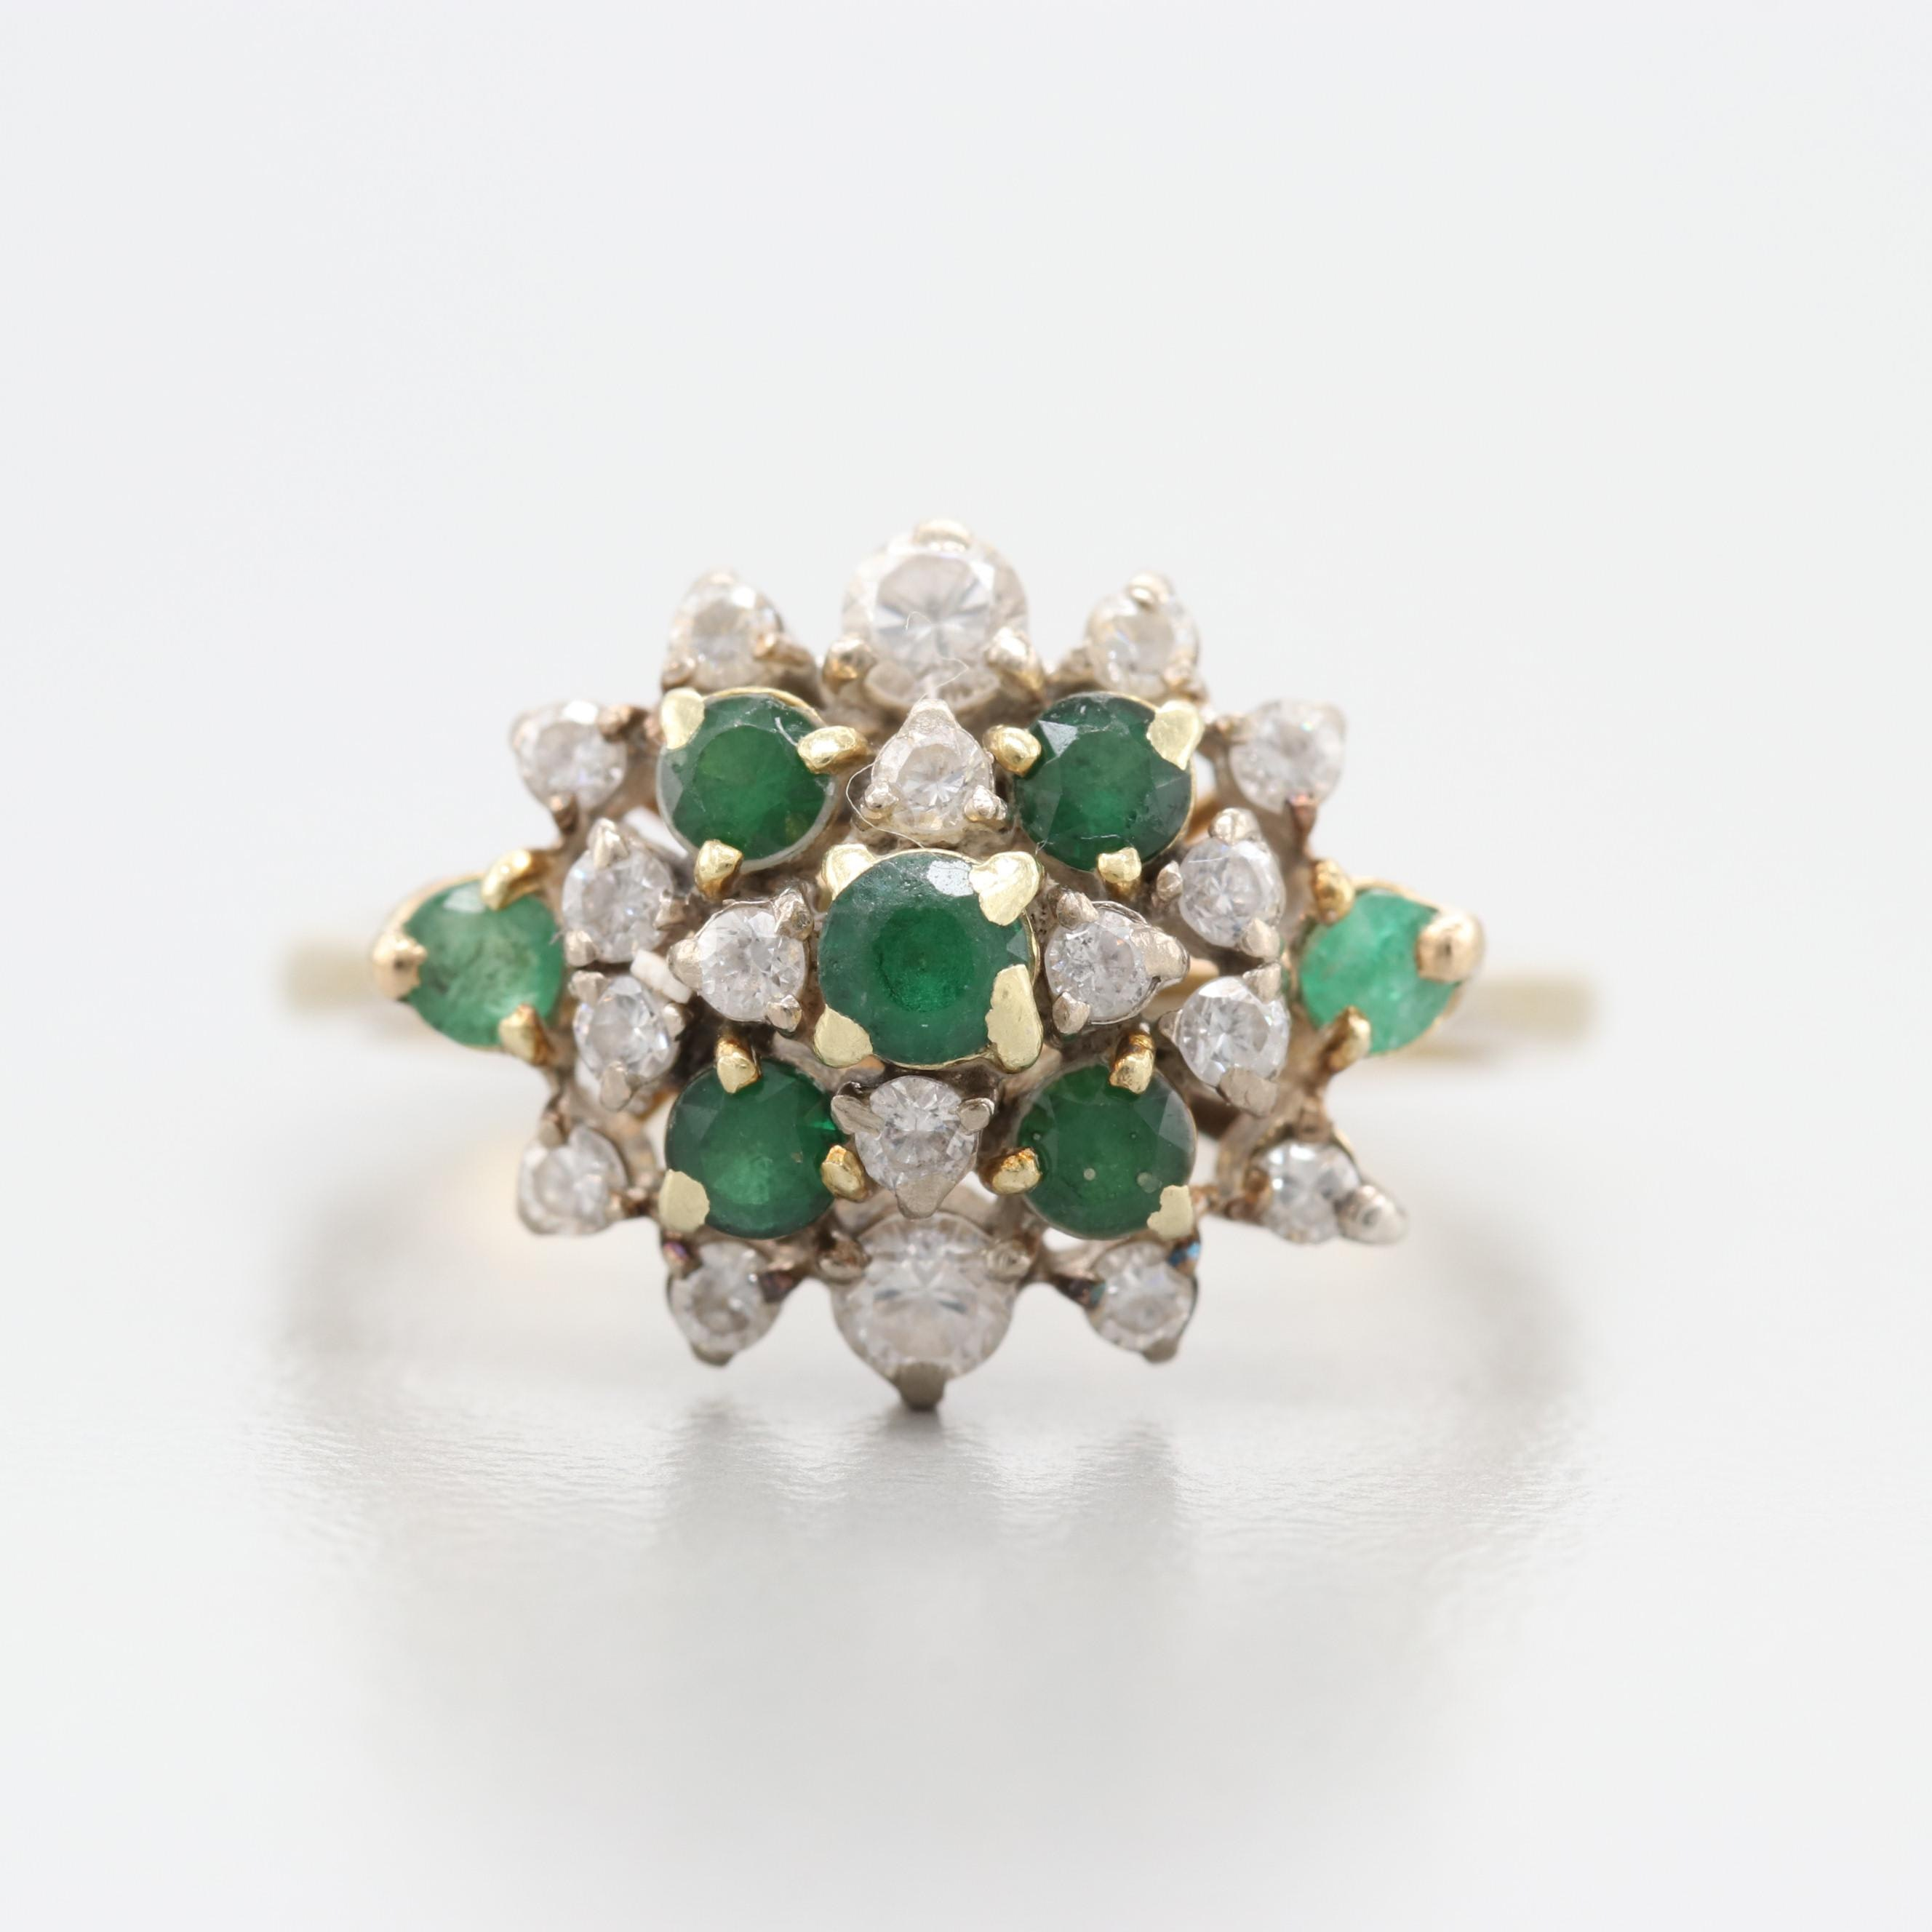 14K Yellow Gold Green Spinel, Emerald and Glass Ring